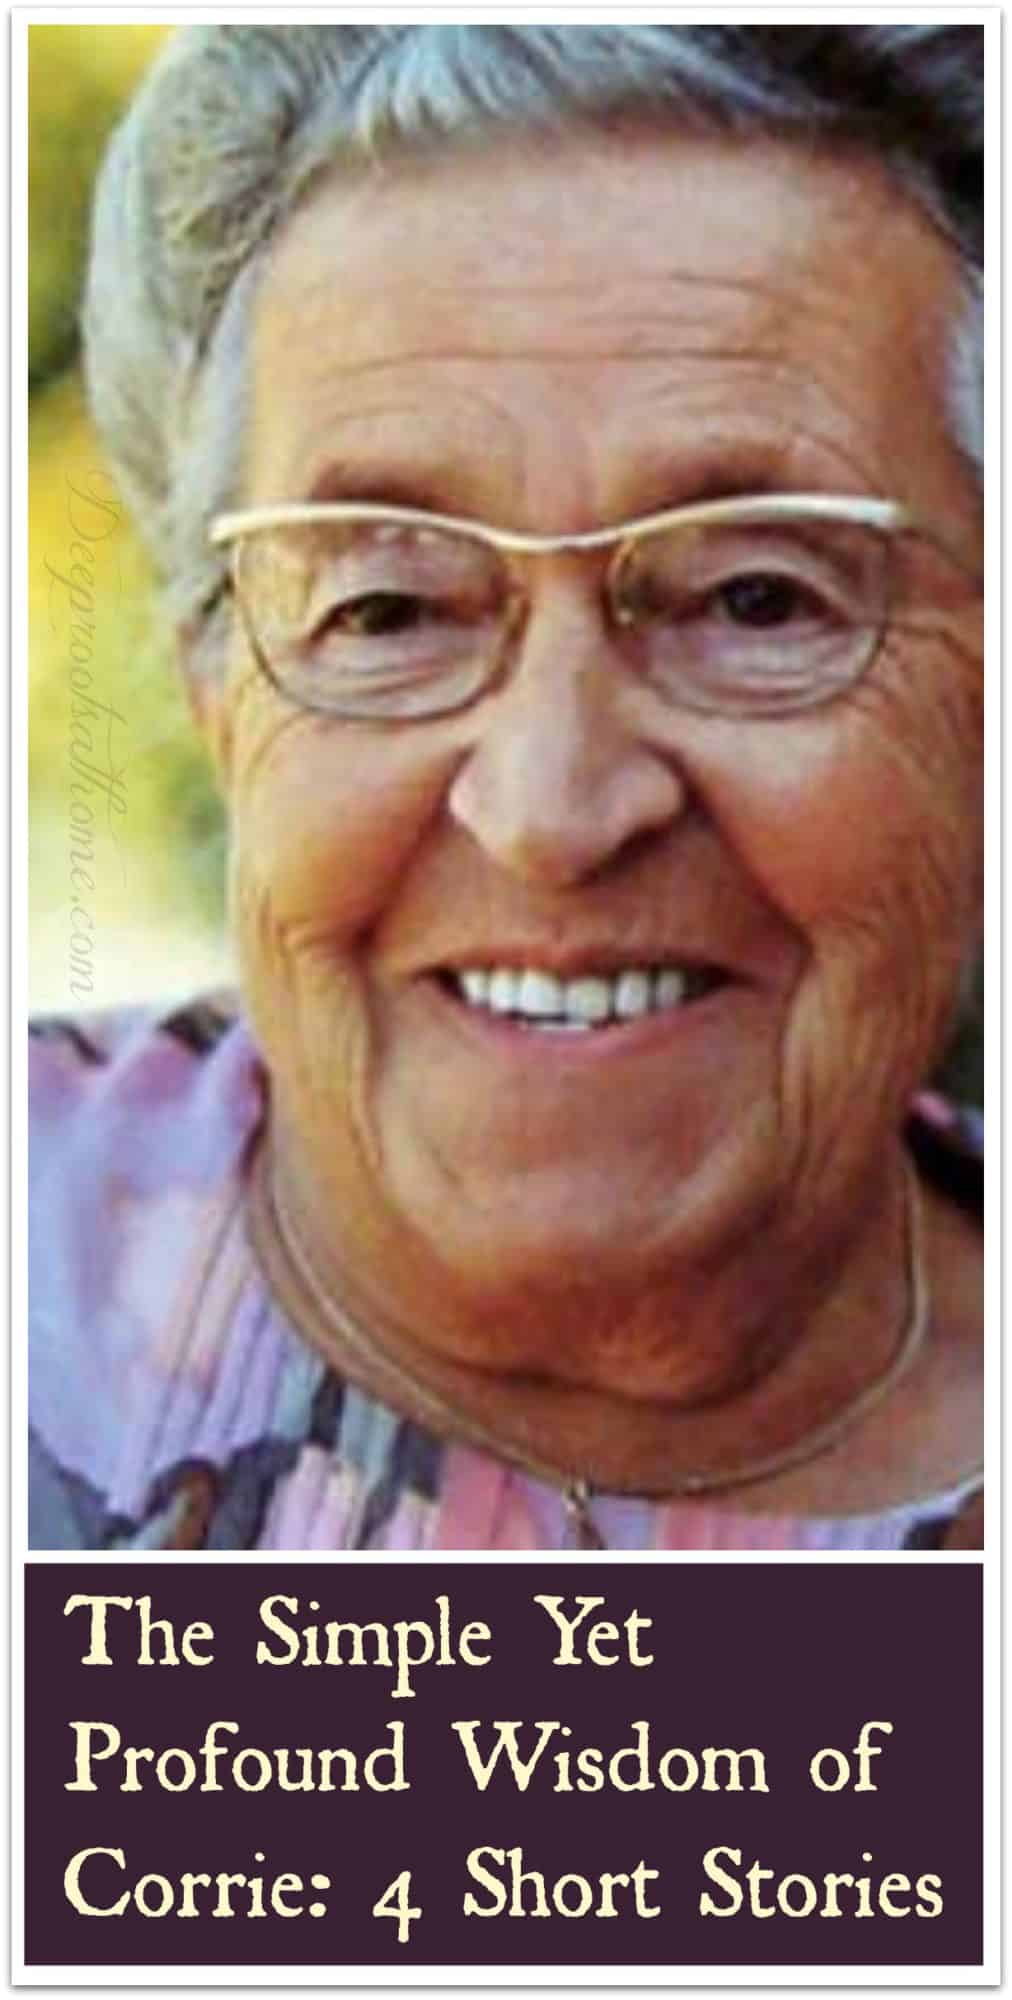 The Simple Yet Profound Wisdom of Corrie: 4 Short Stories. Corrie ten Boom